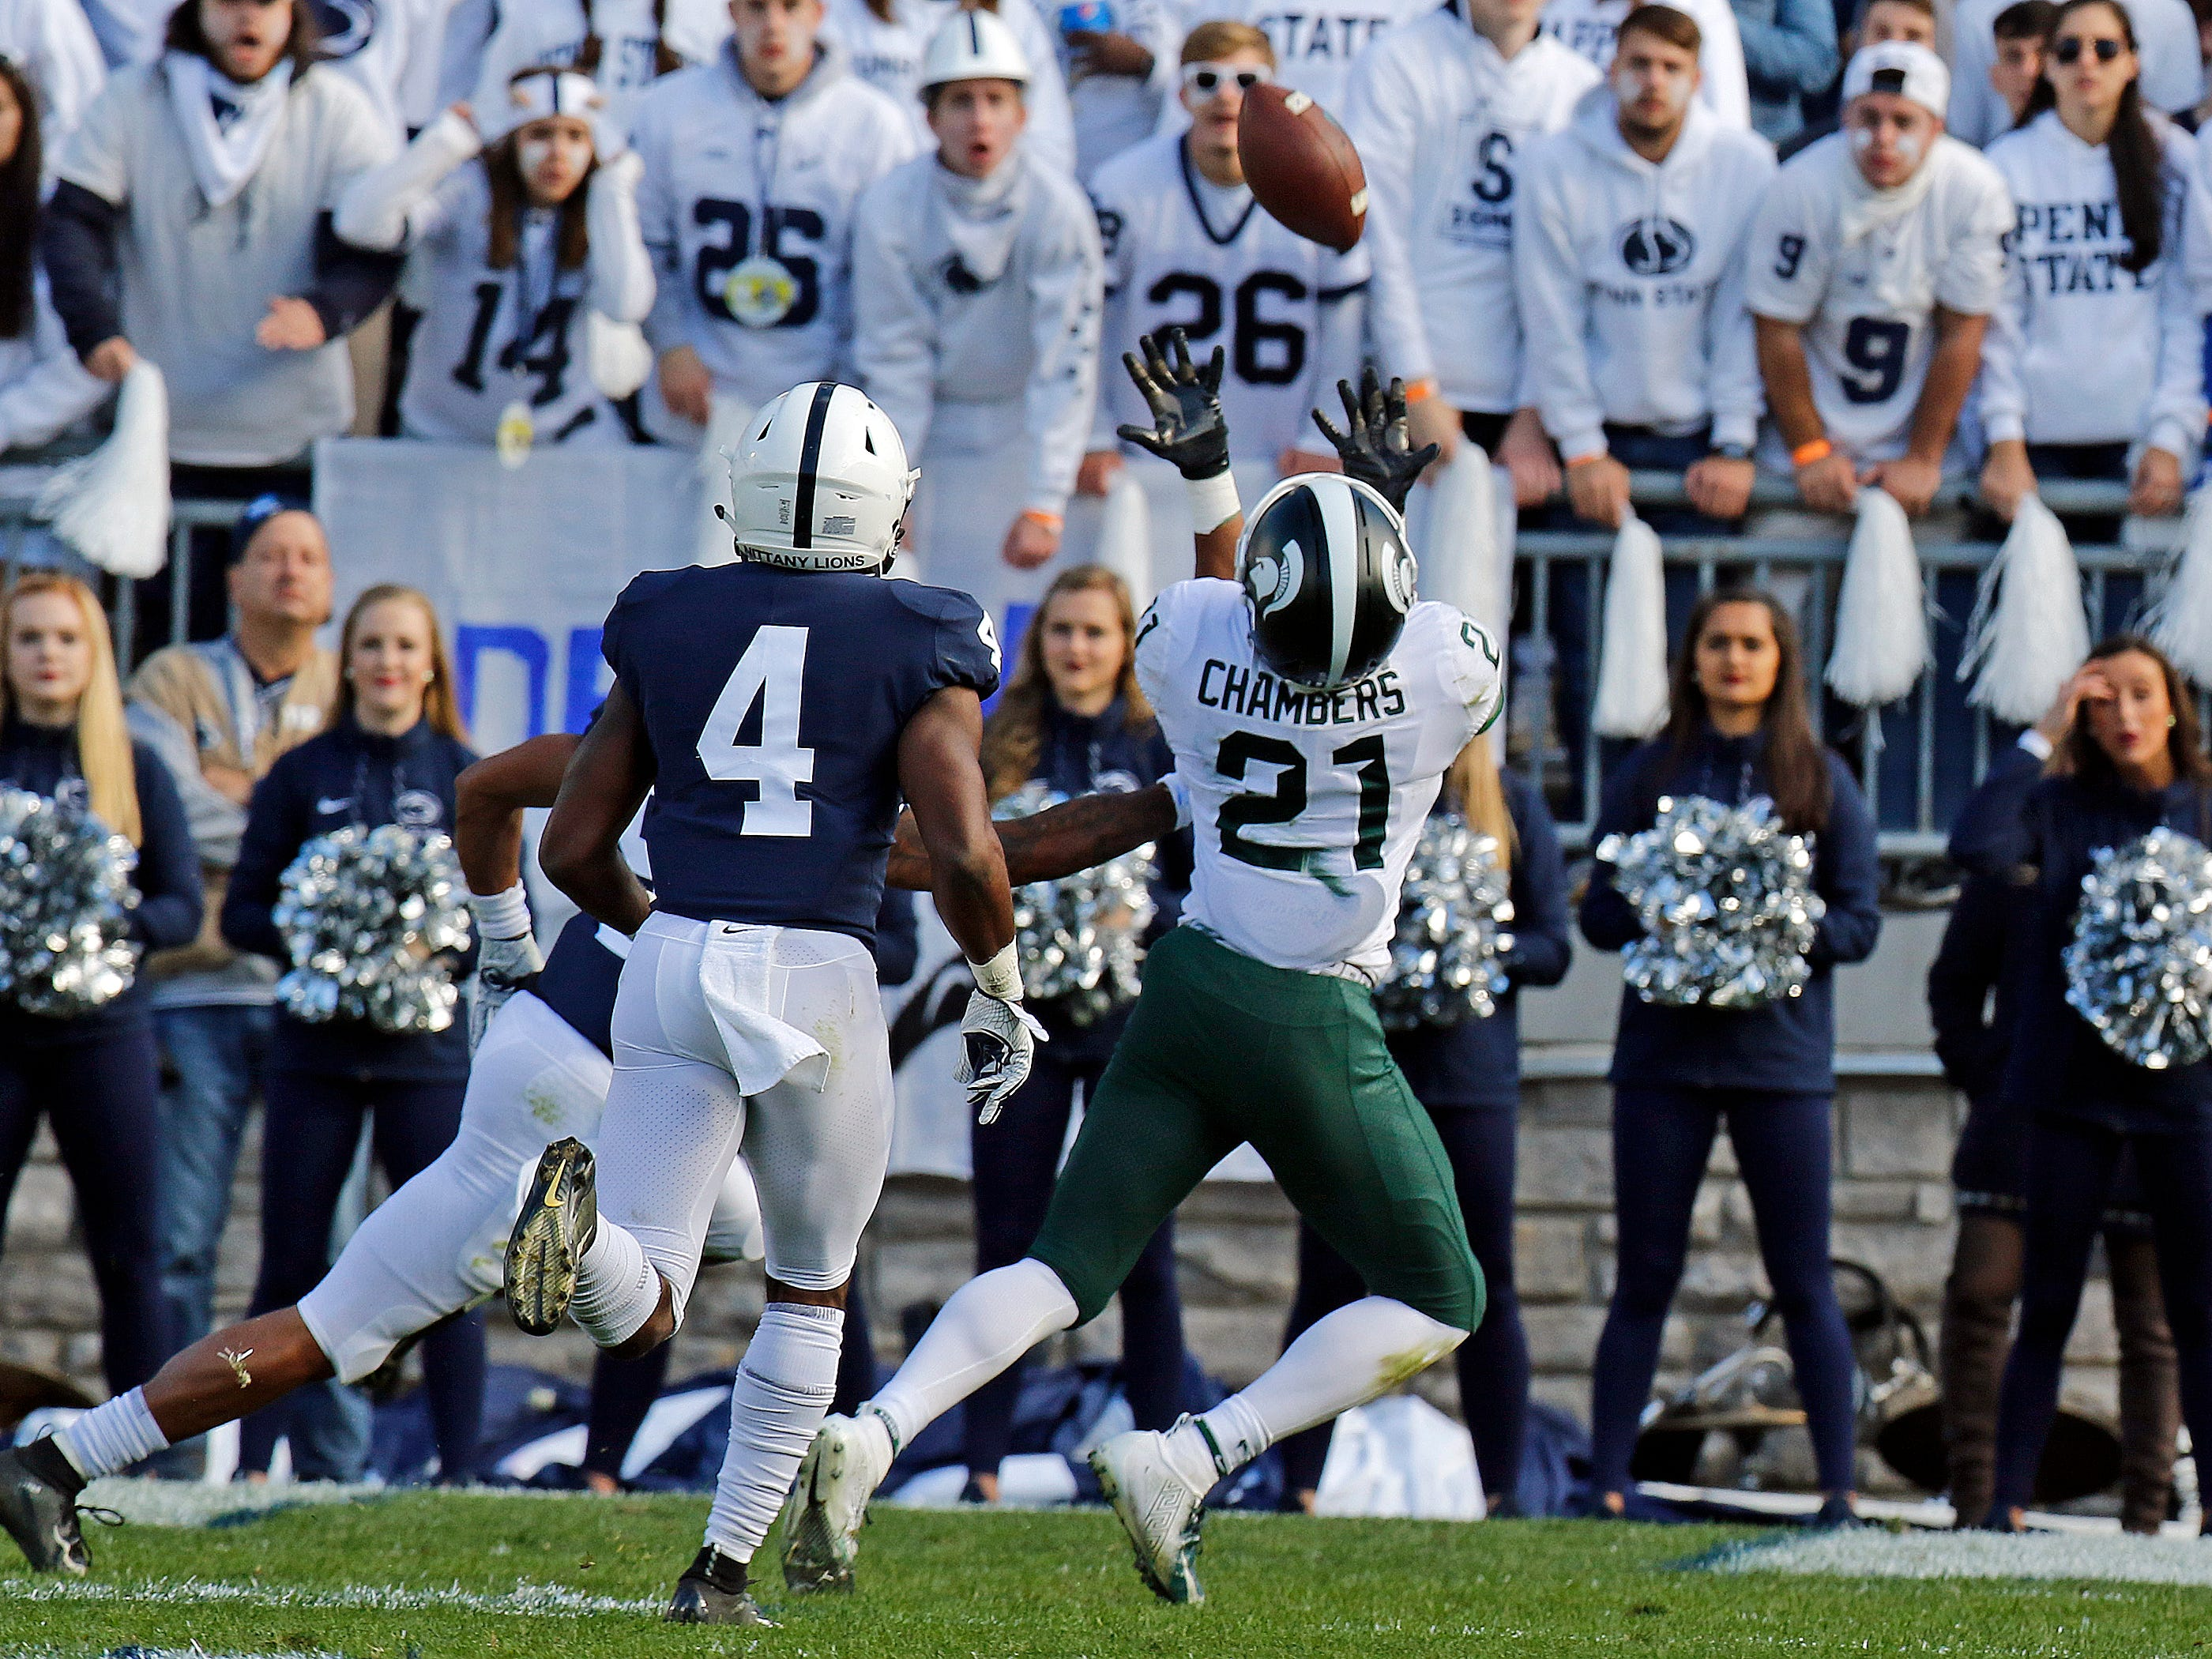 STATE COLLEGE, PA - OCTOBER 13:  Cam Chambers #21 of the Michigan State Spartans pulls in a catch against Nick Scott #4 of the Penn State Nittany Lions on October 13, 2018 at Beaver Stadium in State College, Pennsylvania.  (Photo by Justin K. Aller/Getty Images)